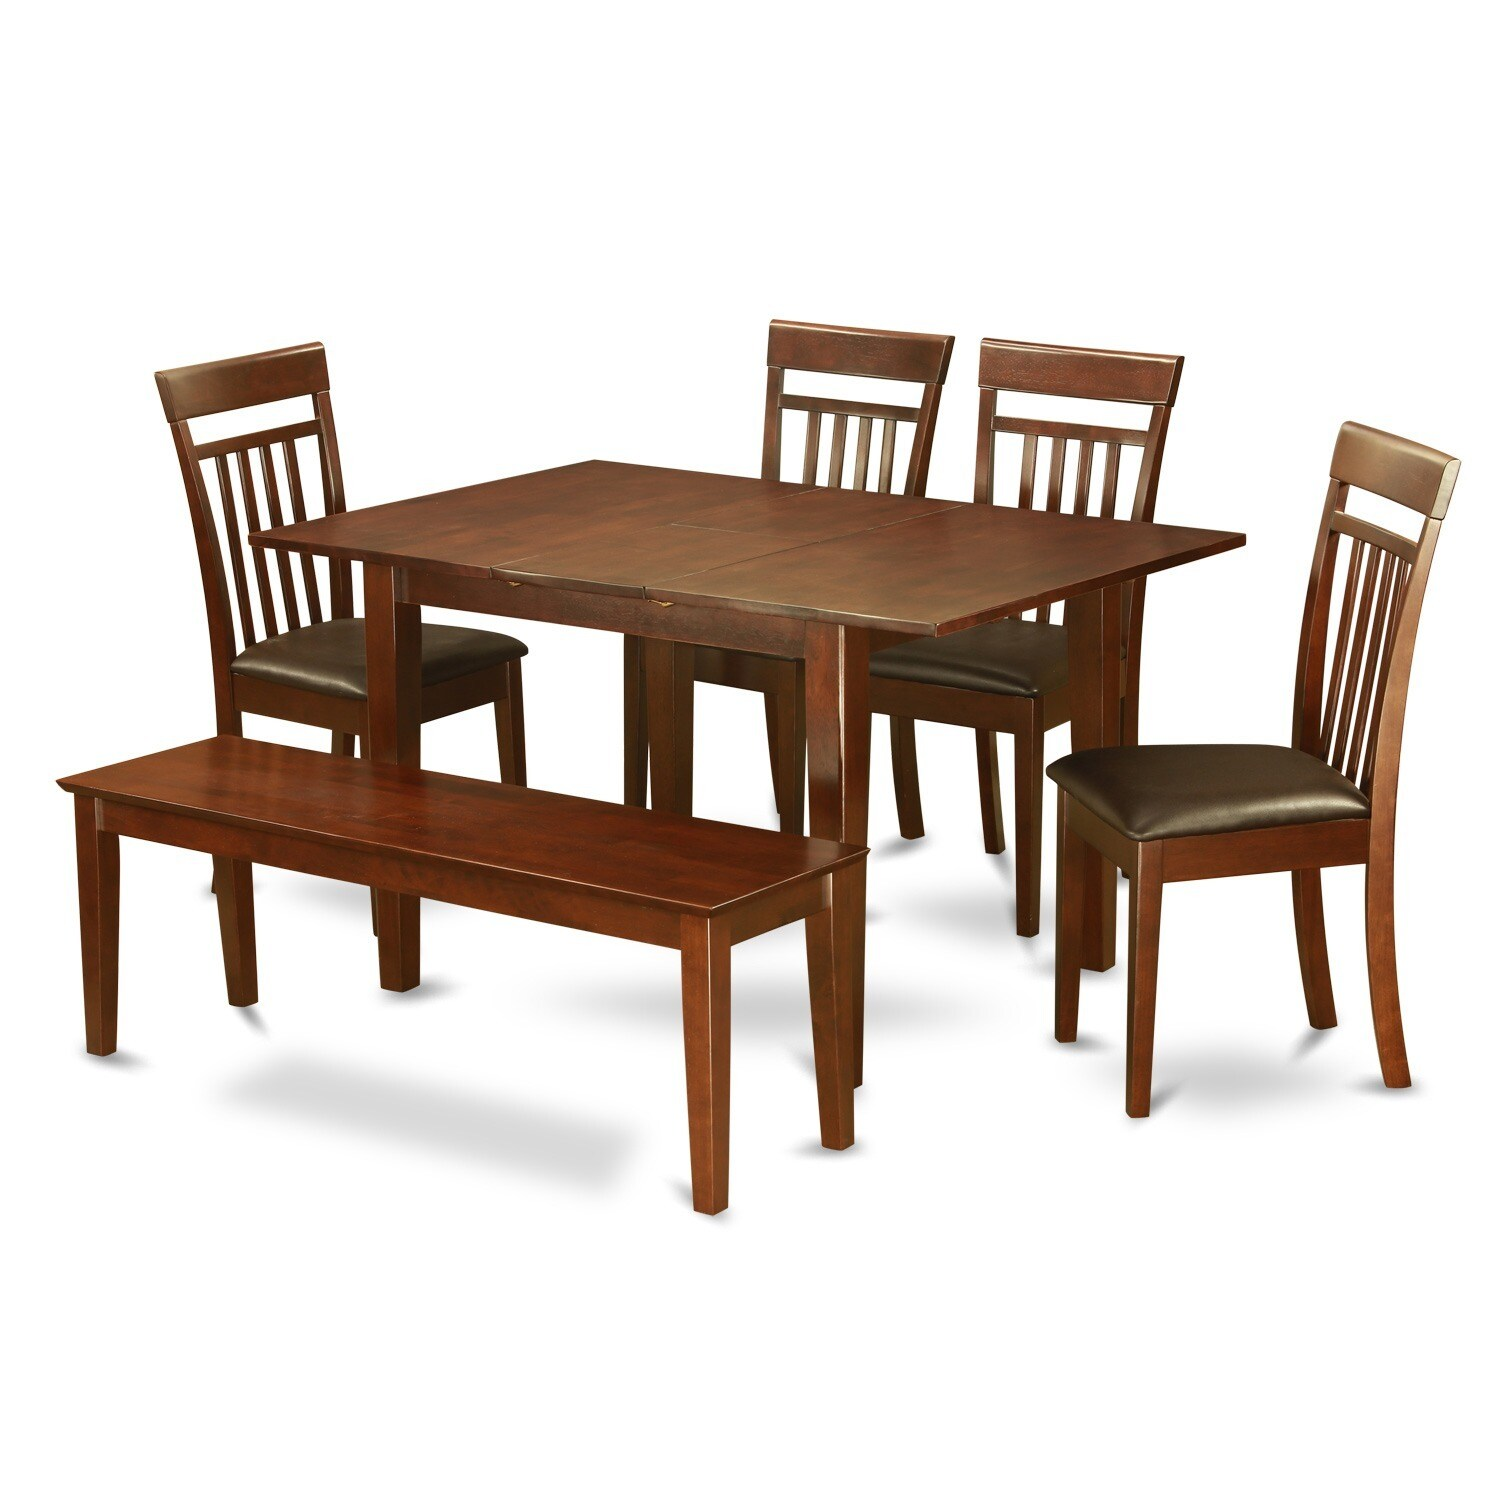 6-piece Dinette Kitchen Table and 4 Dining Chairs and Din...